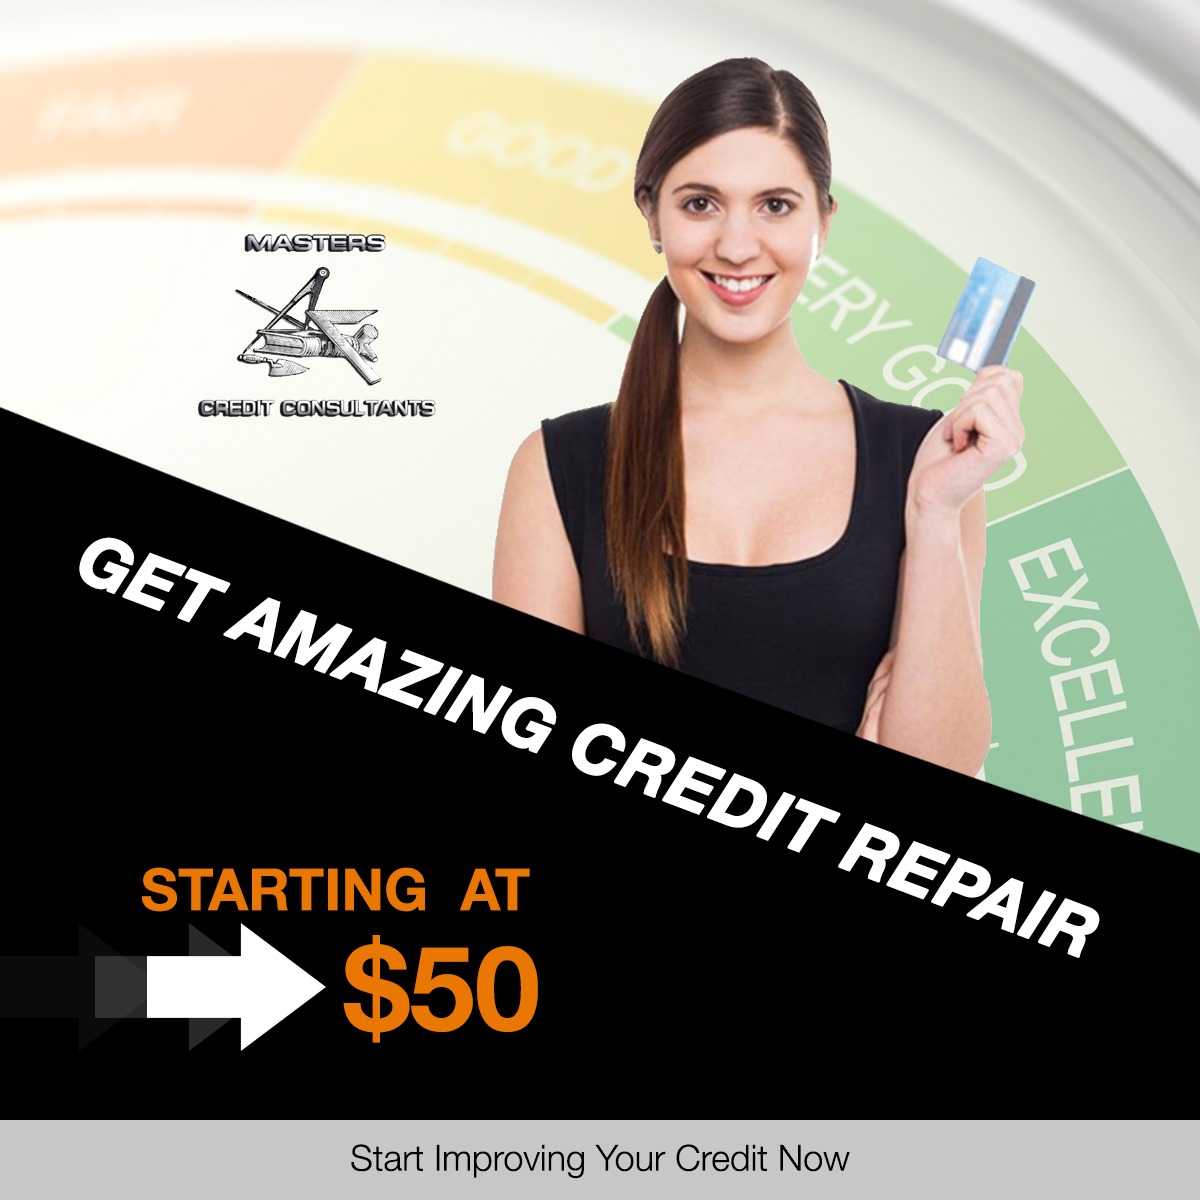 Masters Credit Consultants